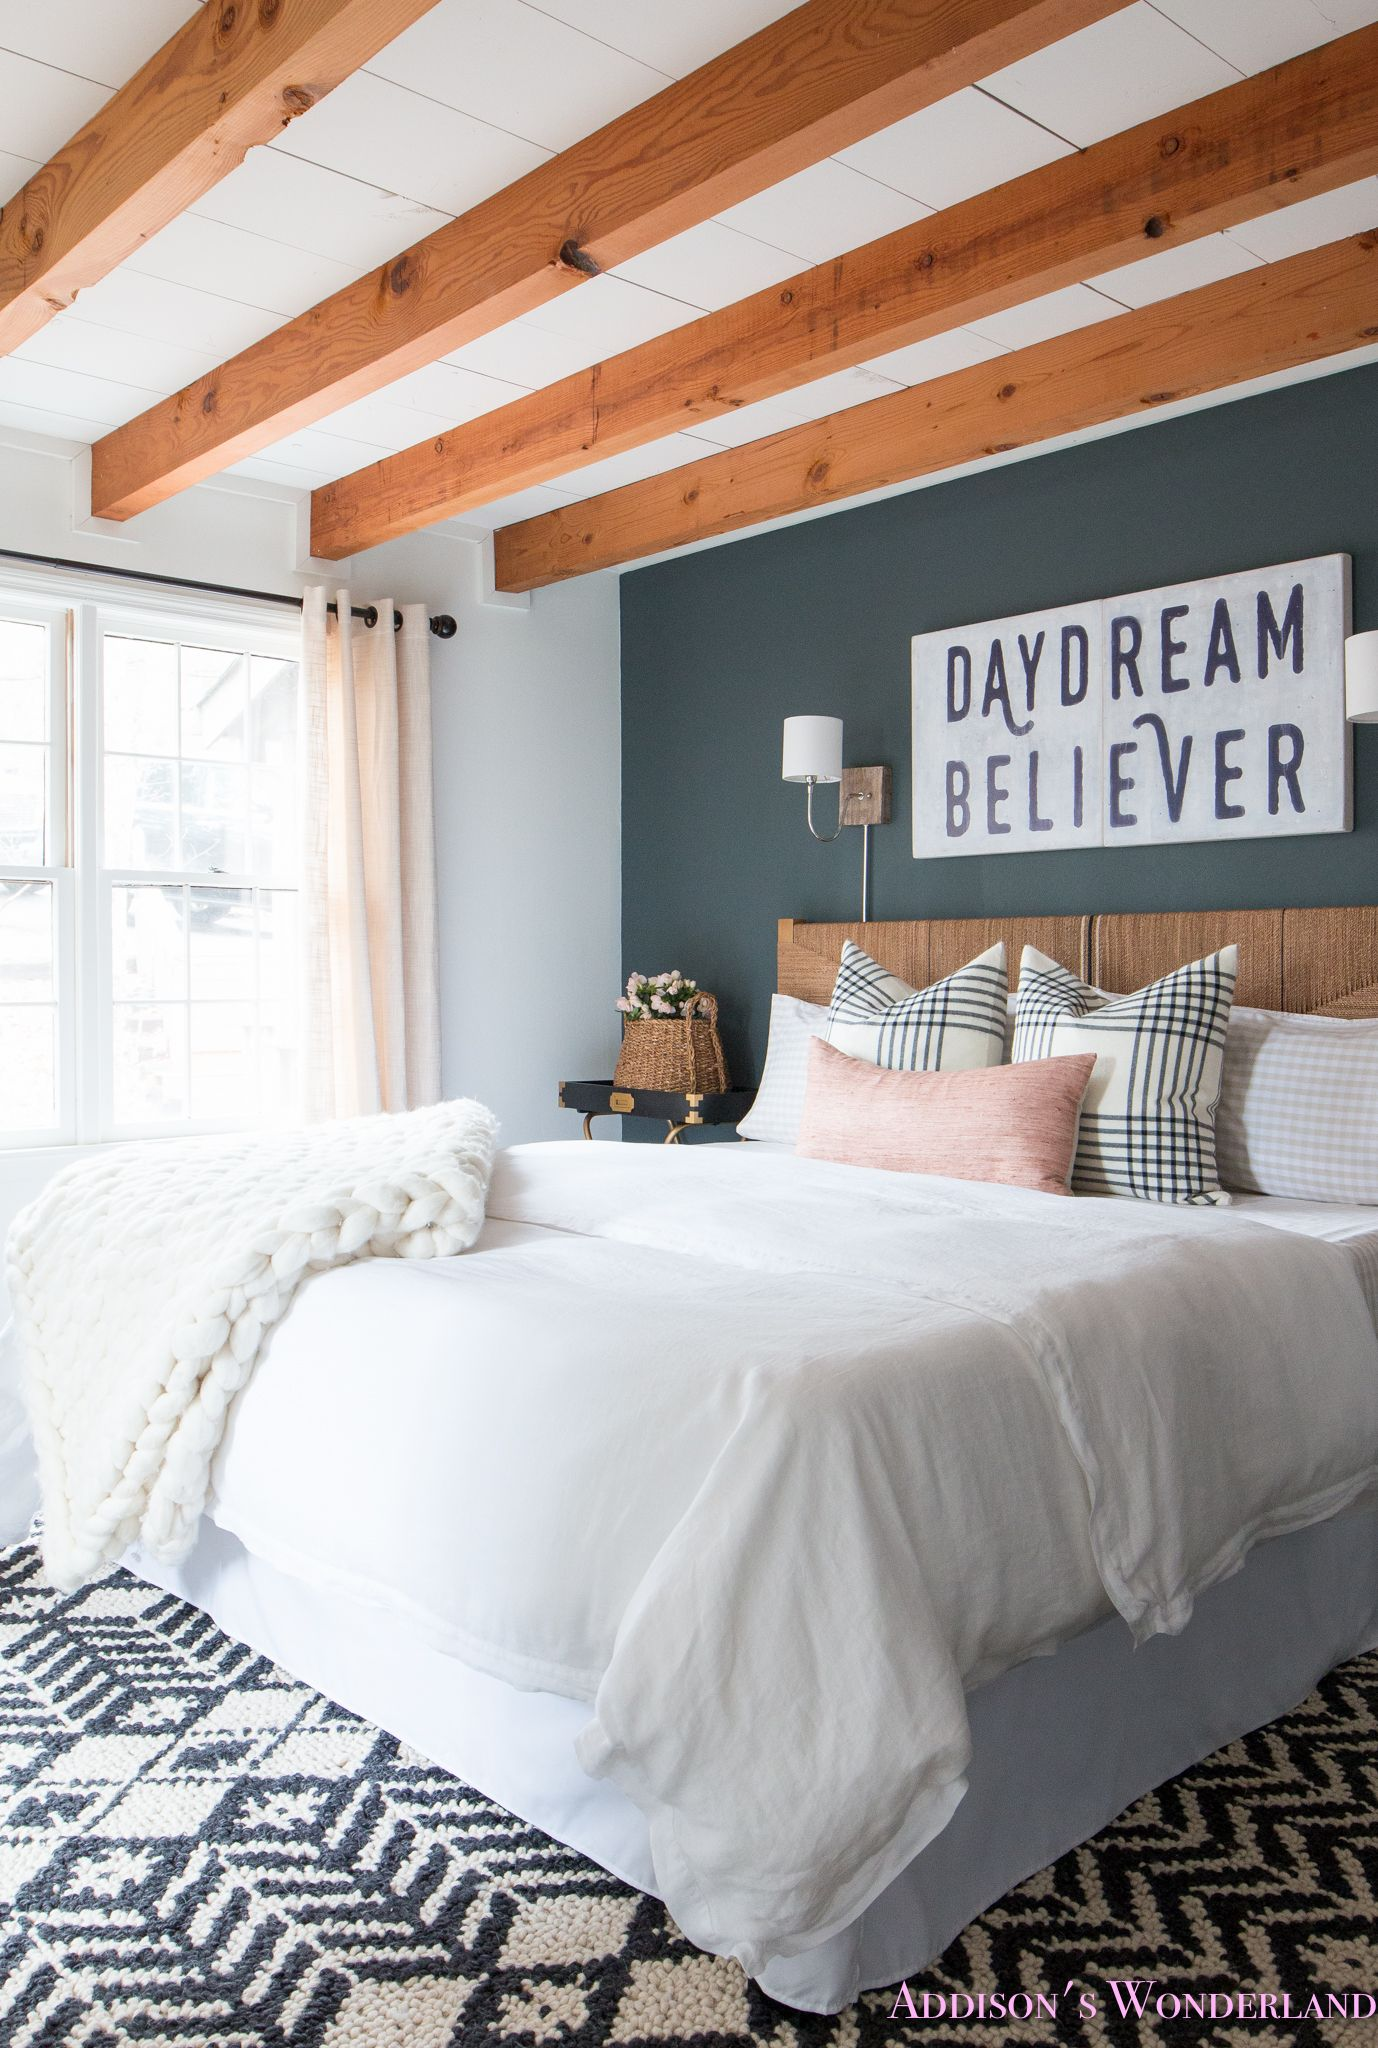 Our Relaxed Chic Master Bedroom Reveal W/ Serena & Lily